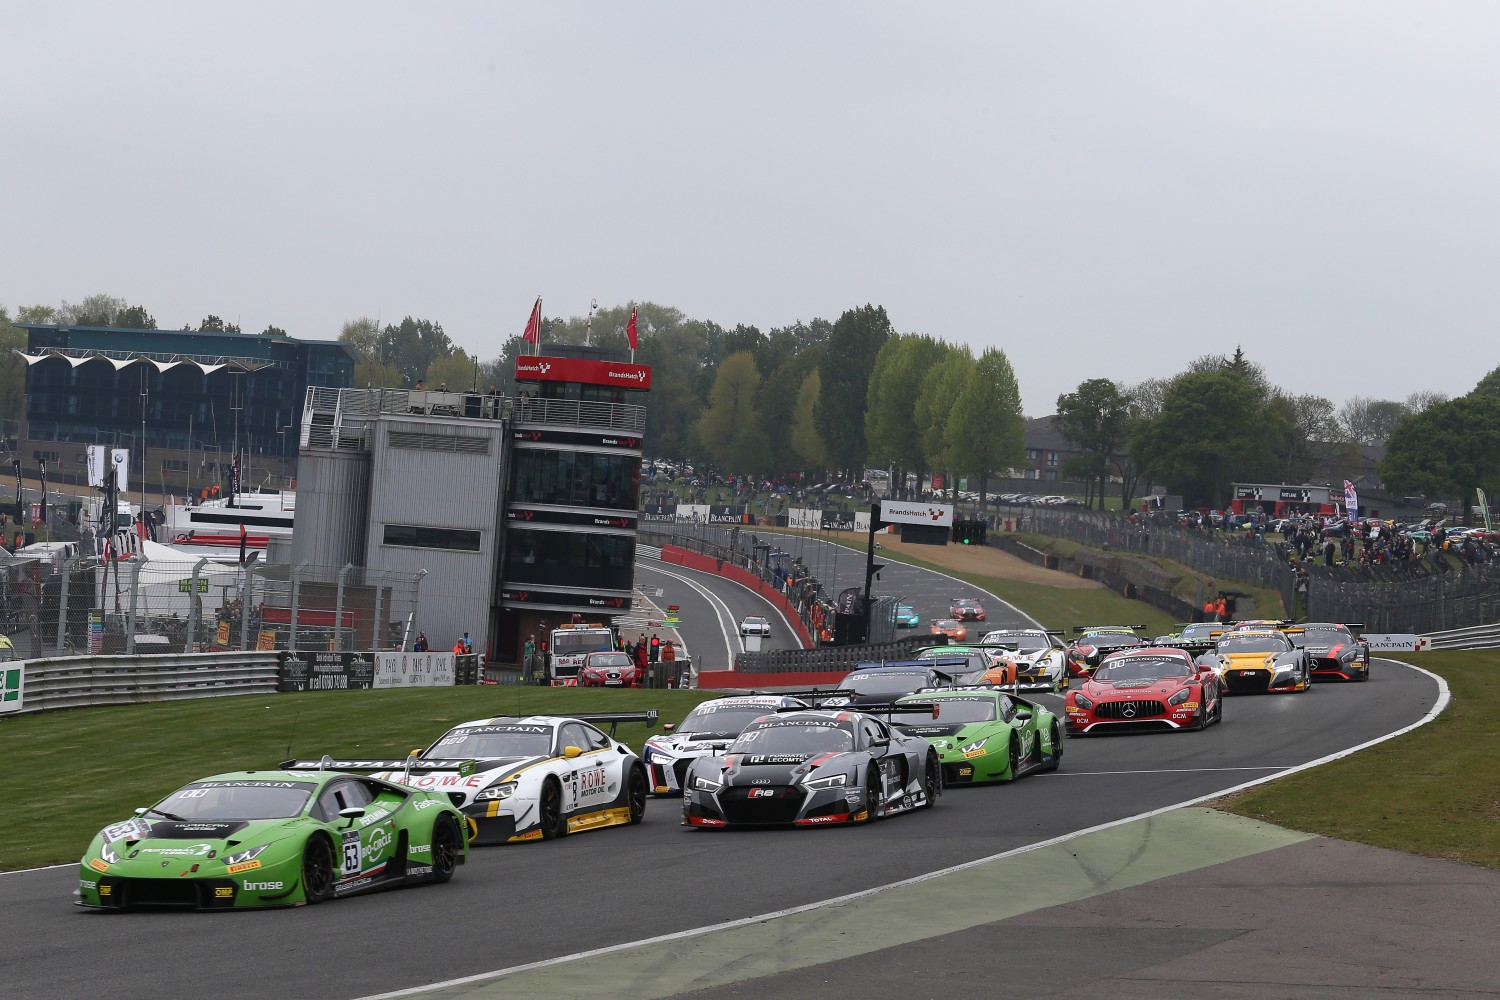 Ticket for Brands Hatch event now on sale